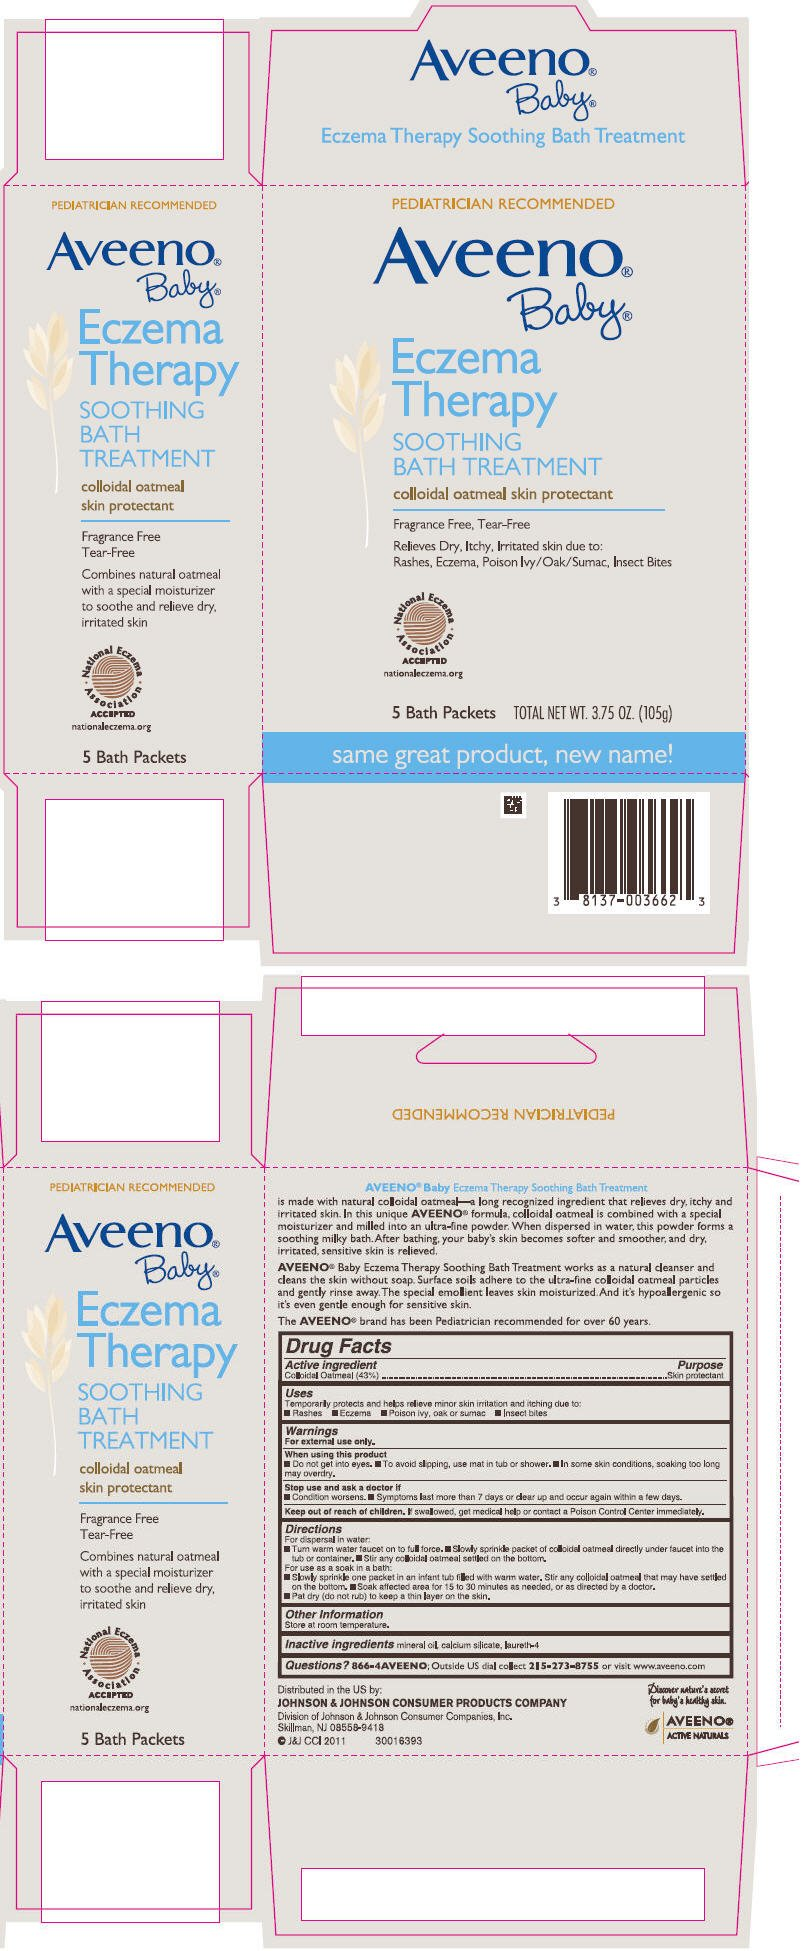 Aveeno Baby Eczema Therapy Soothing Bath Treatment Powder Johnson